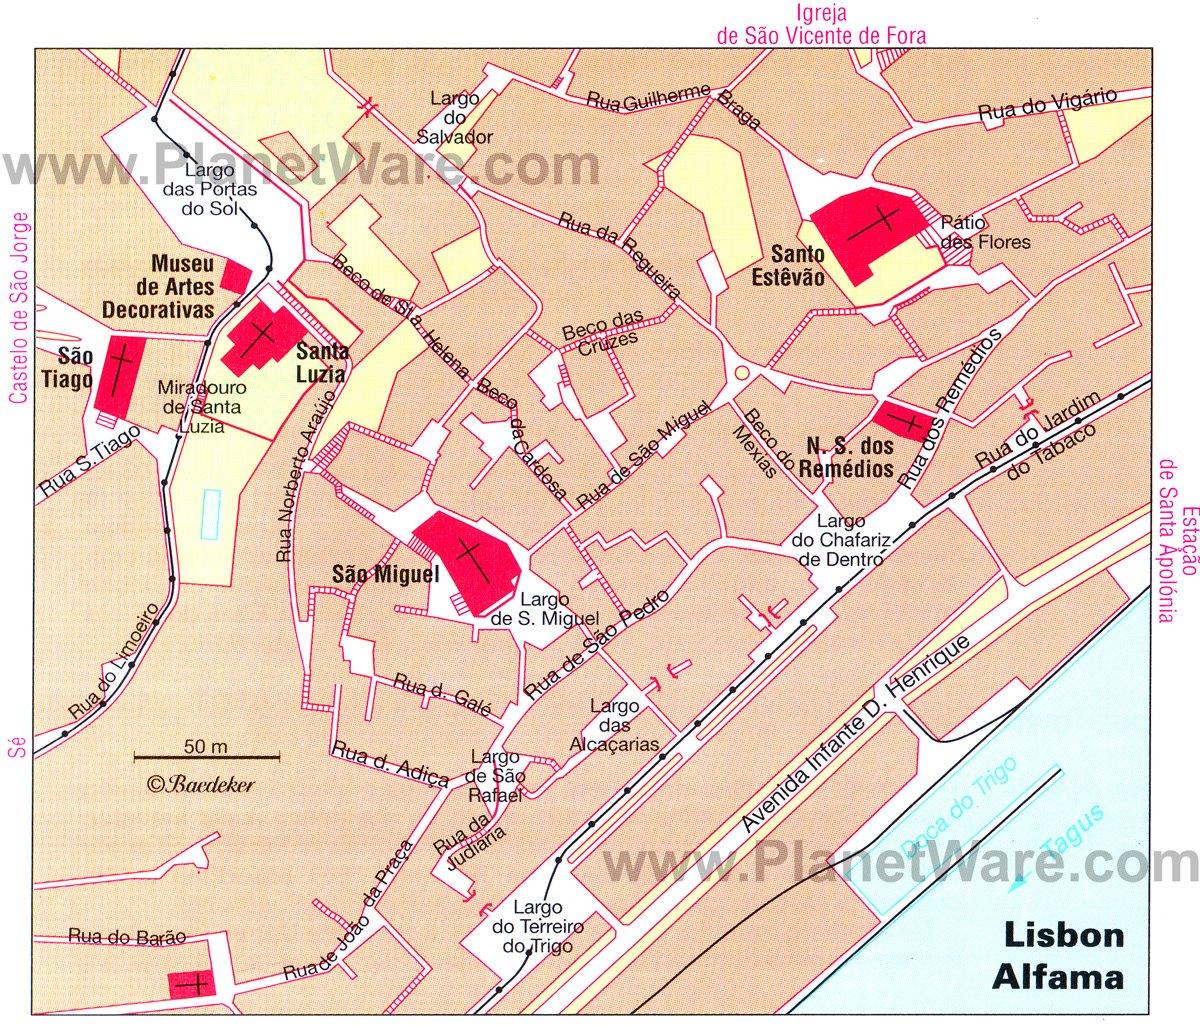 Lisbon Alfama map - Tourist attractions